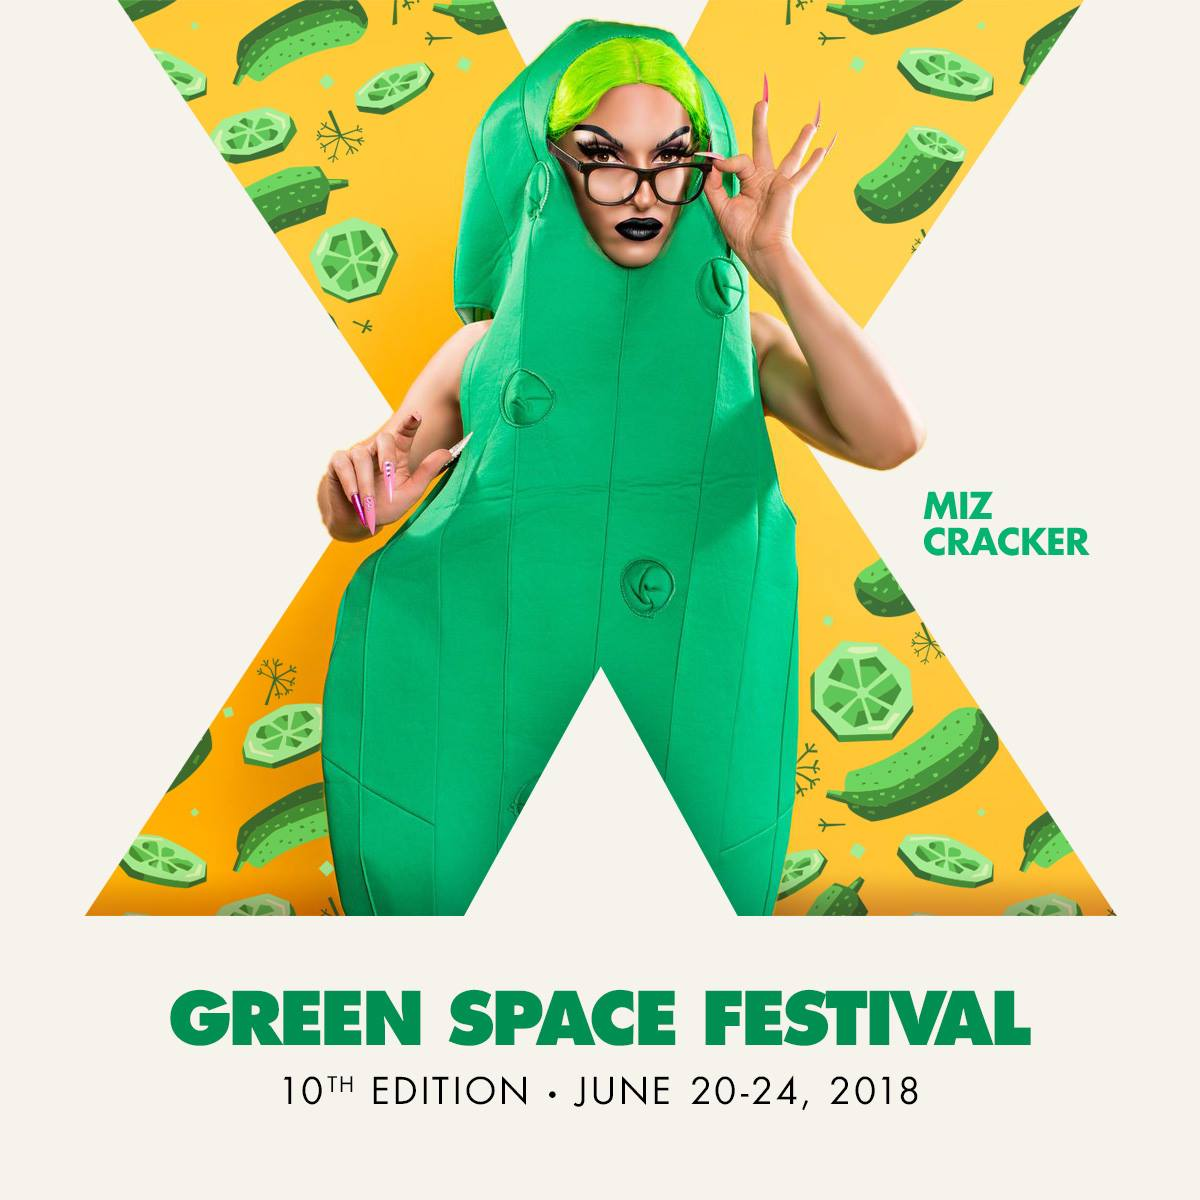 Miz Cracker with text Green Space Festival, 10th Edition - June 20-24, 2018